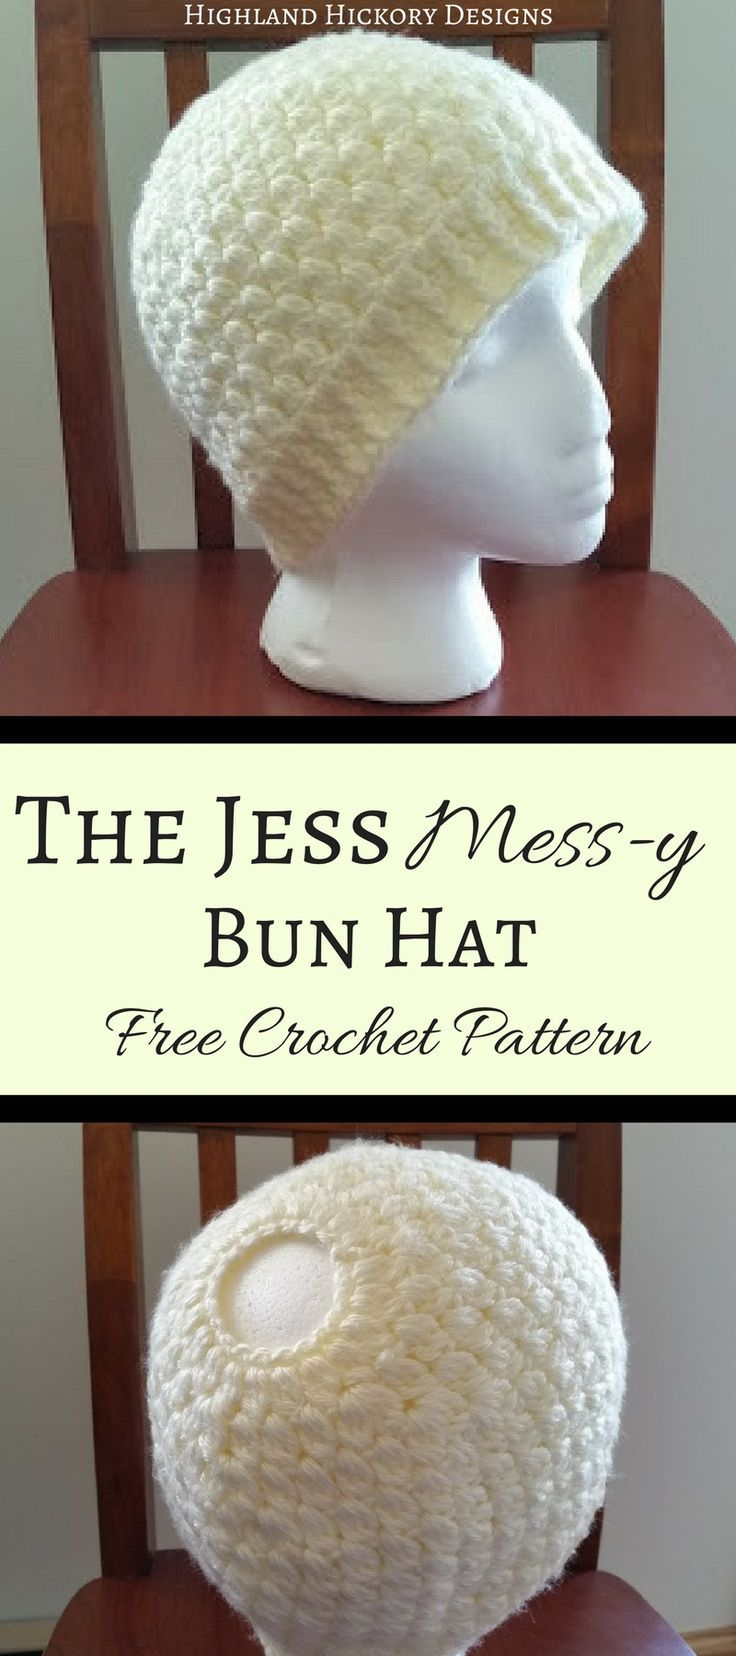 Free crochet pattern for women's winter wear. Make the Jess Mess-y Bun Hat in any color of the rainbow, but don't forget to add the matching extra long infinity scarf.